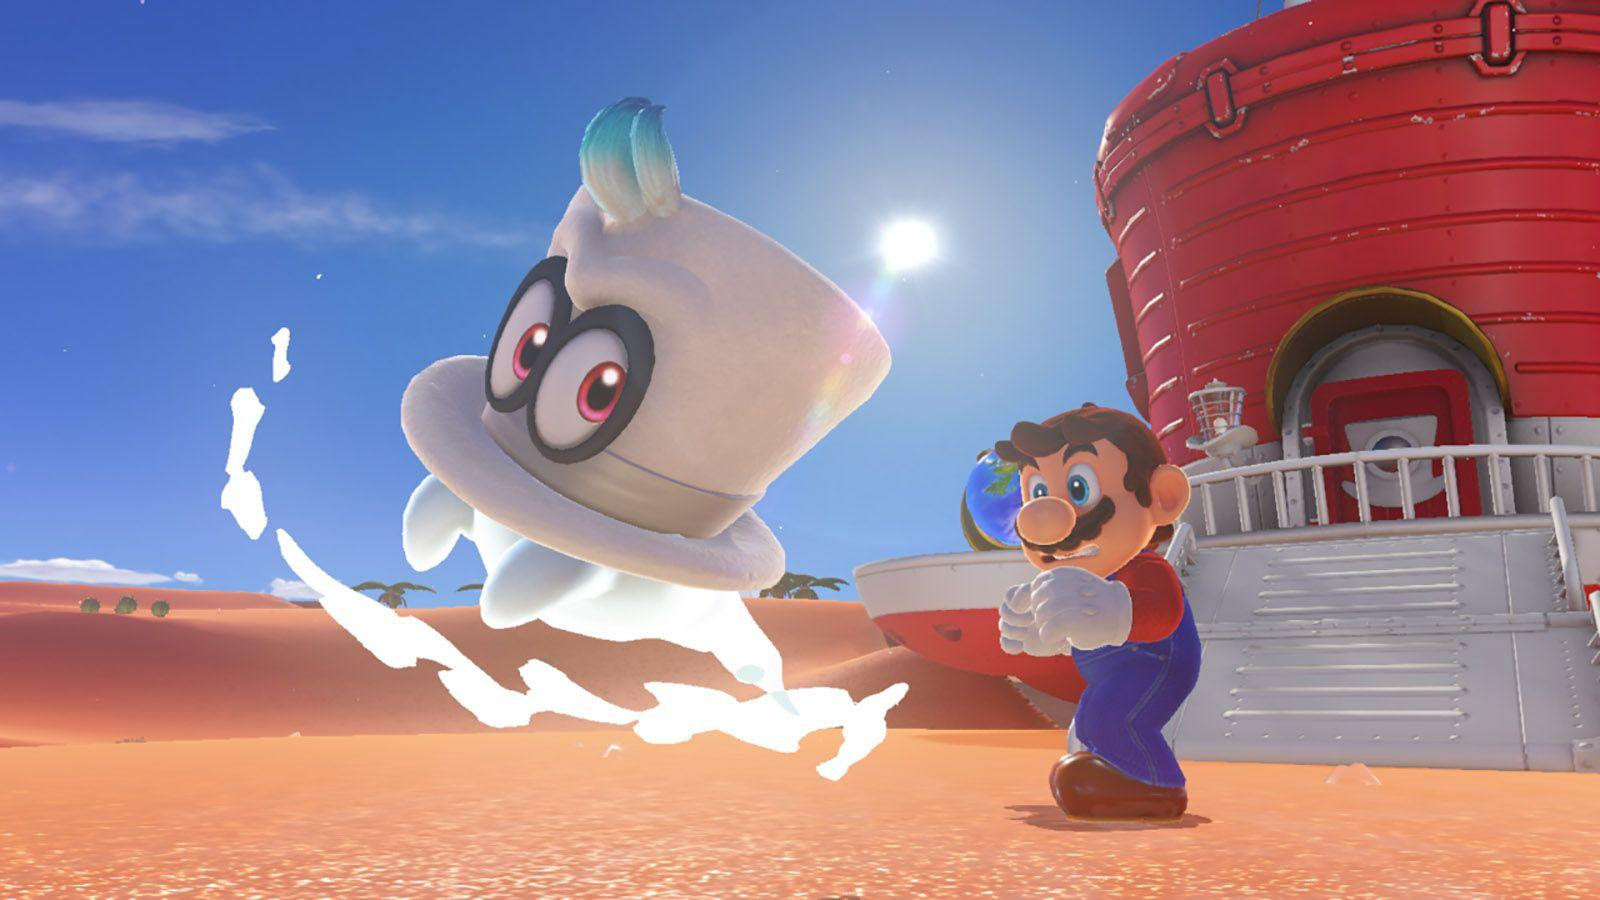 Super Mario Odyssey' may look bizarre, but it feels just right